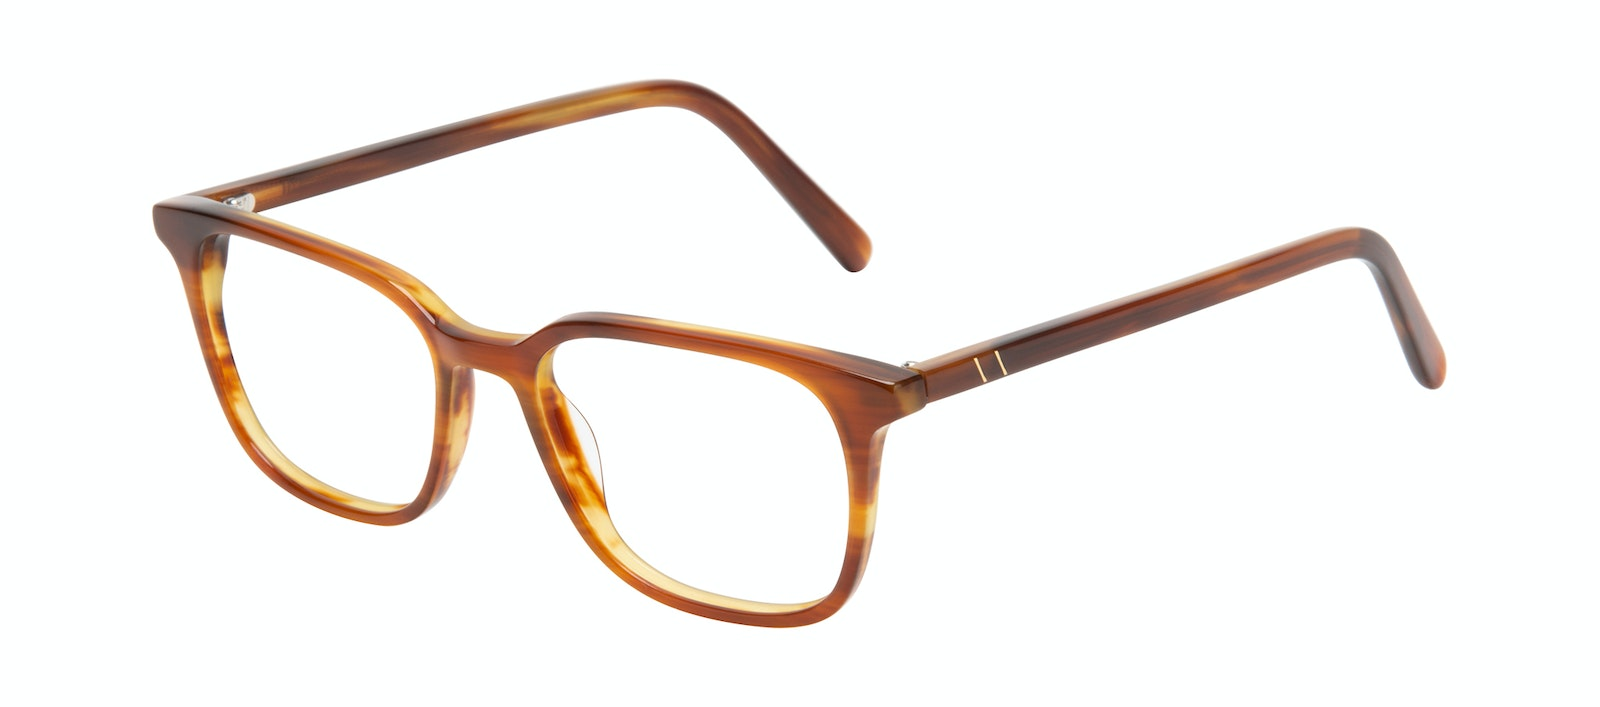 Affordable Fashion Glasses Square Eyeglasses Men Choice Havana Tilt